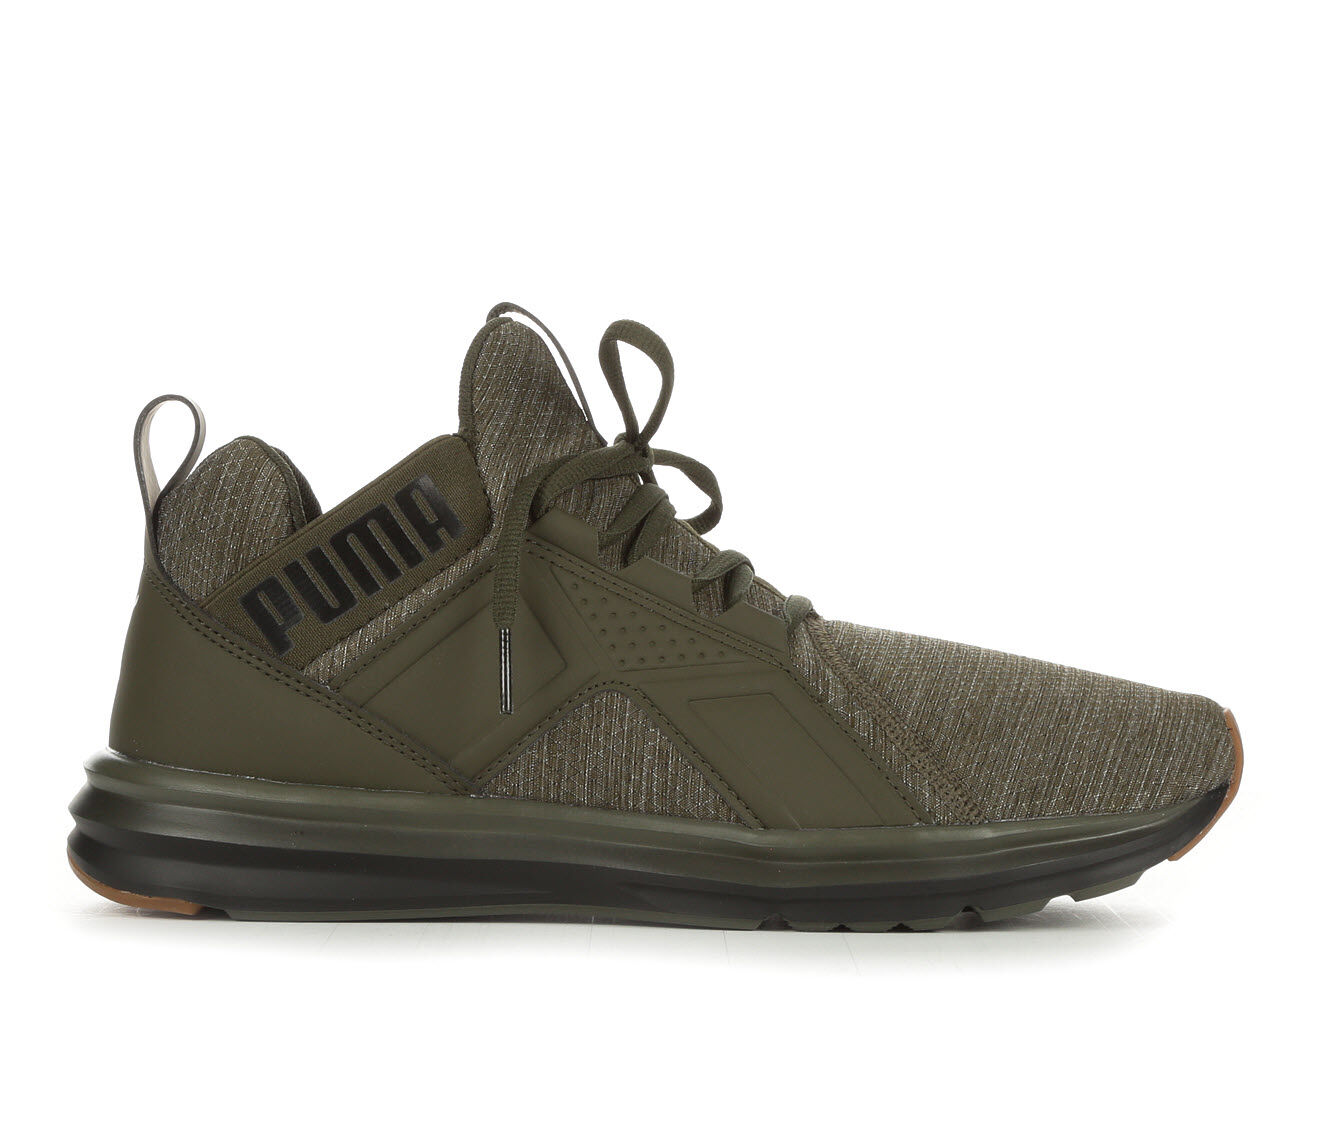 For Cheap Men's Puma Enzo Heather Ripstop Sneakers Green/Black